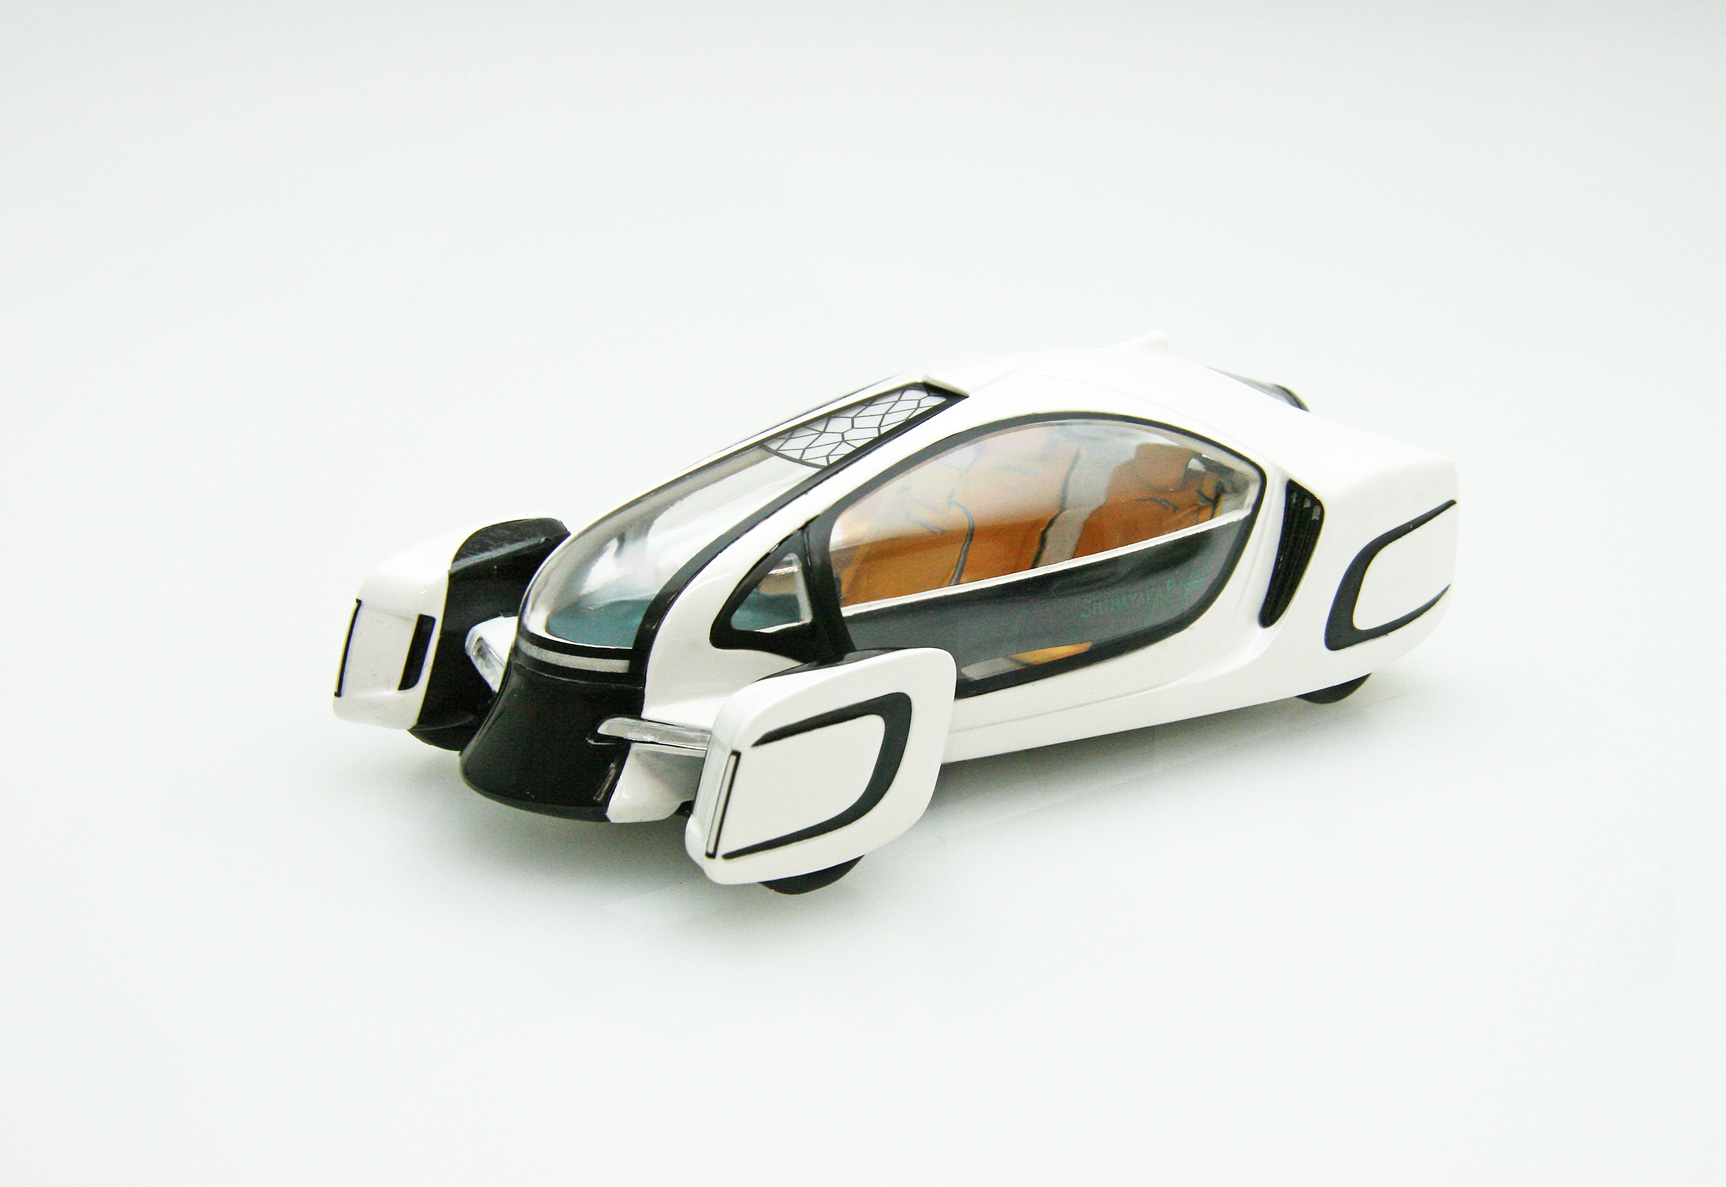 【45702】I to P Impact Concept car [RESIN]